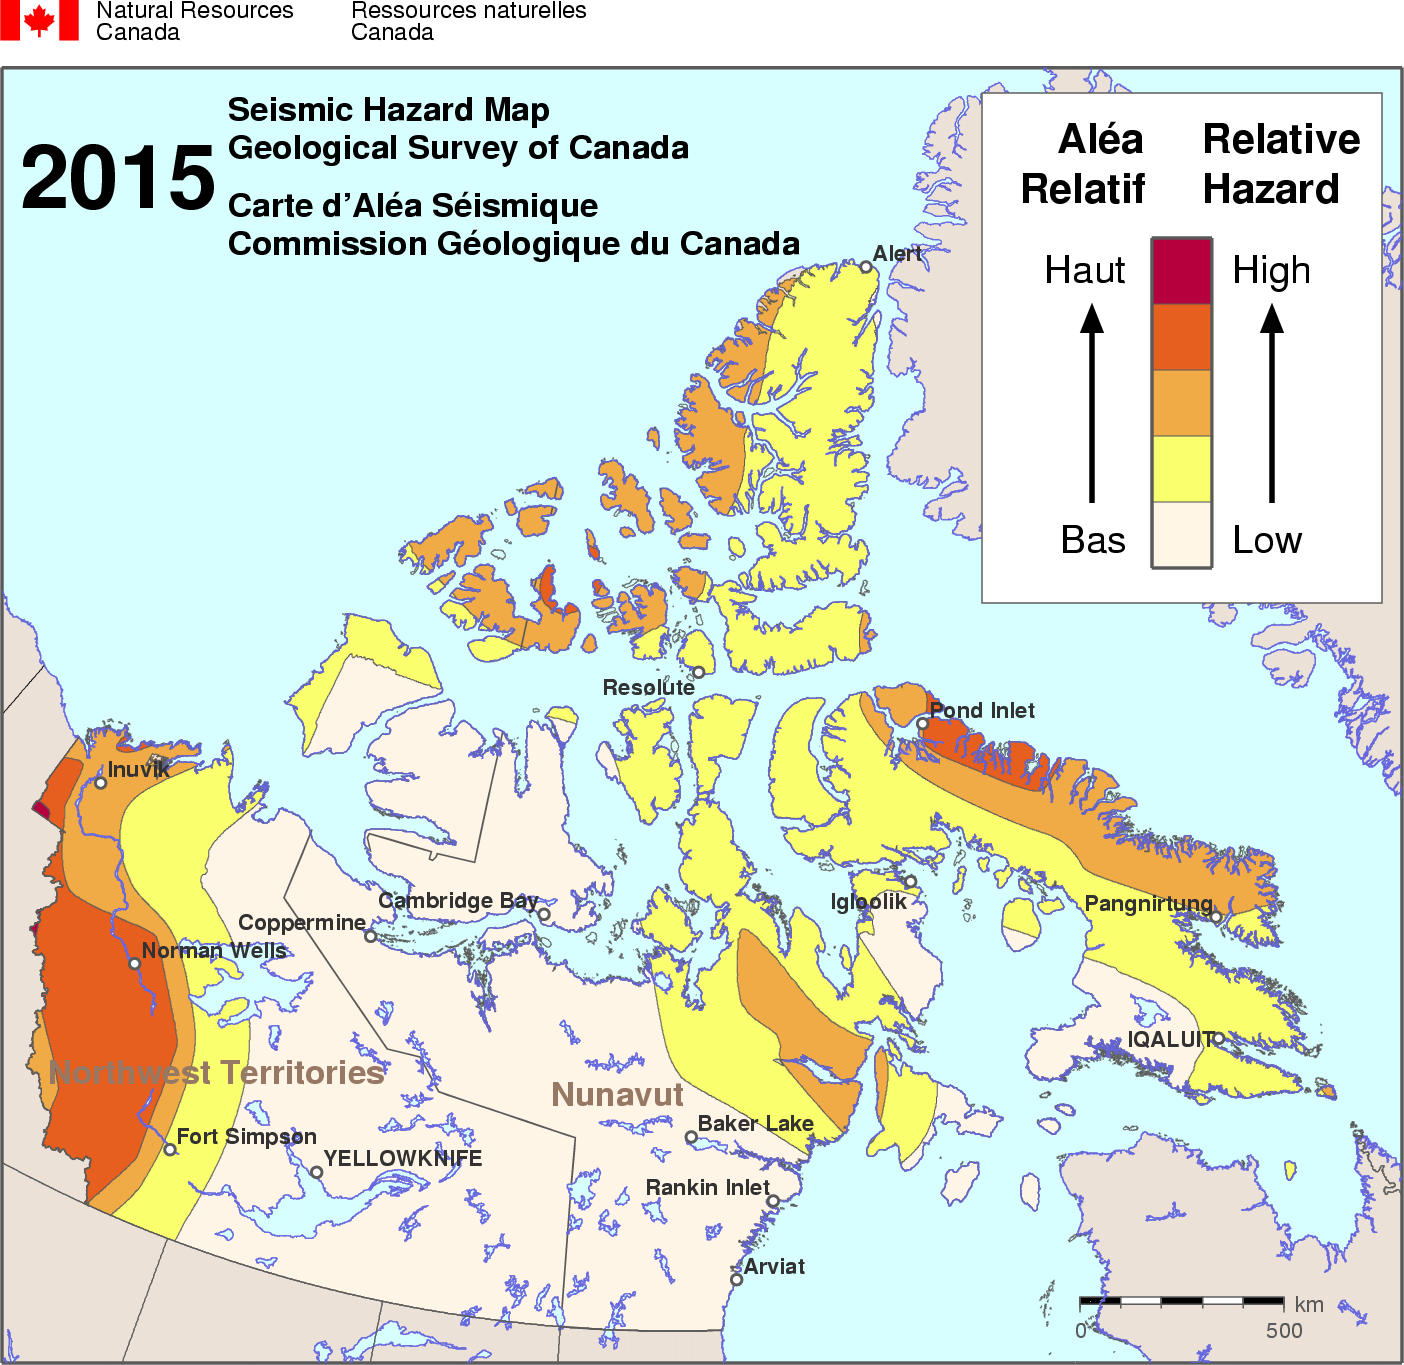 2015 NBCC seismic hazard map - NTNU